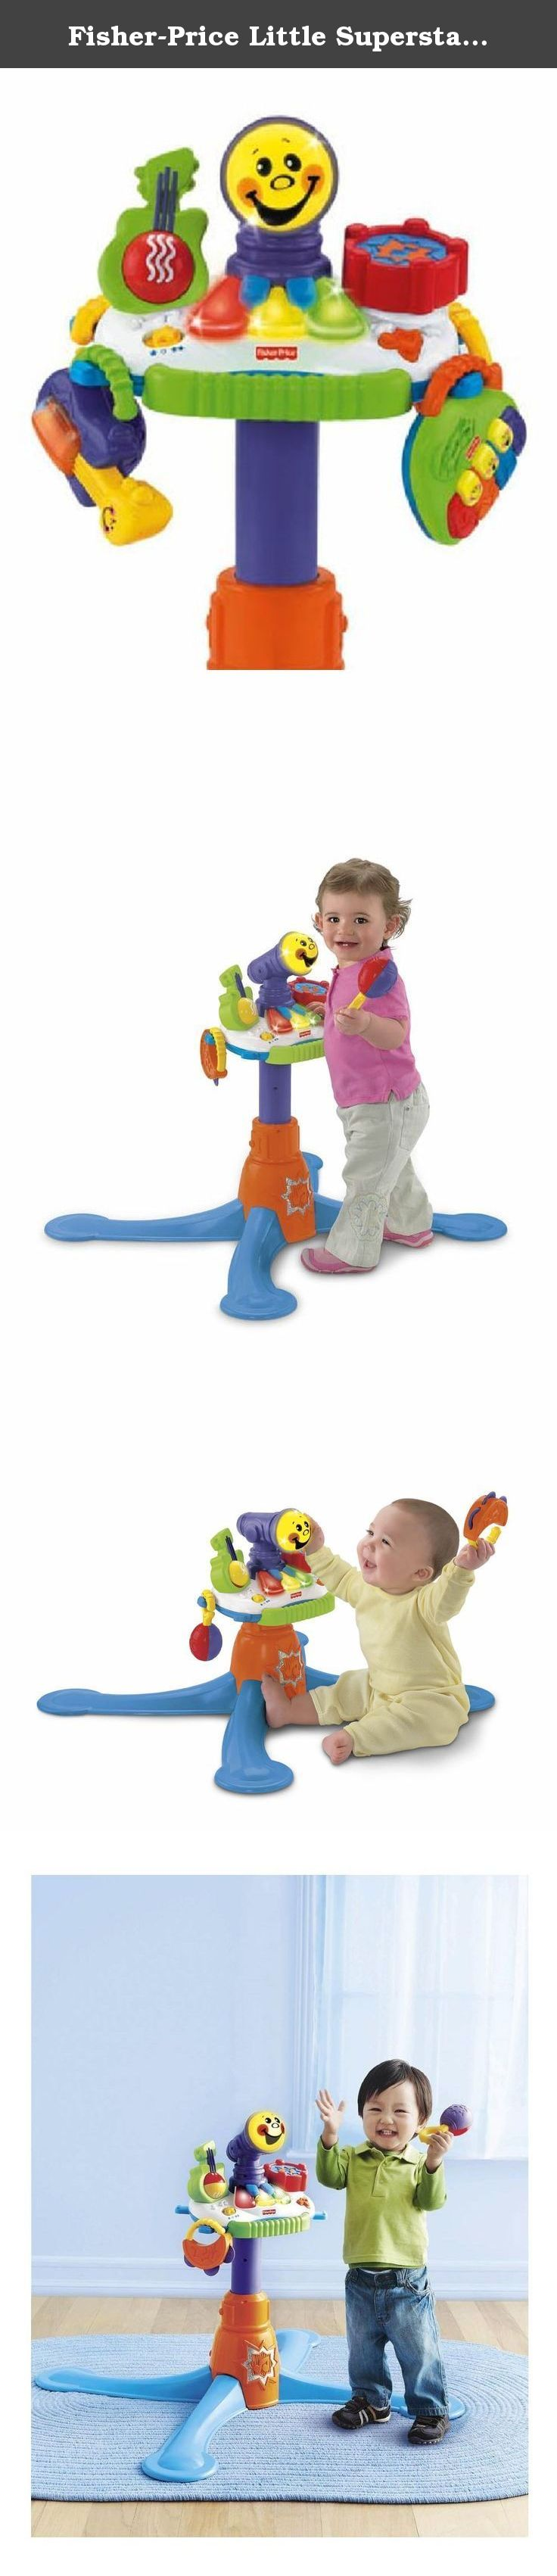 Fisher Price Little Superstar Jammin Band Musical Microphone The